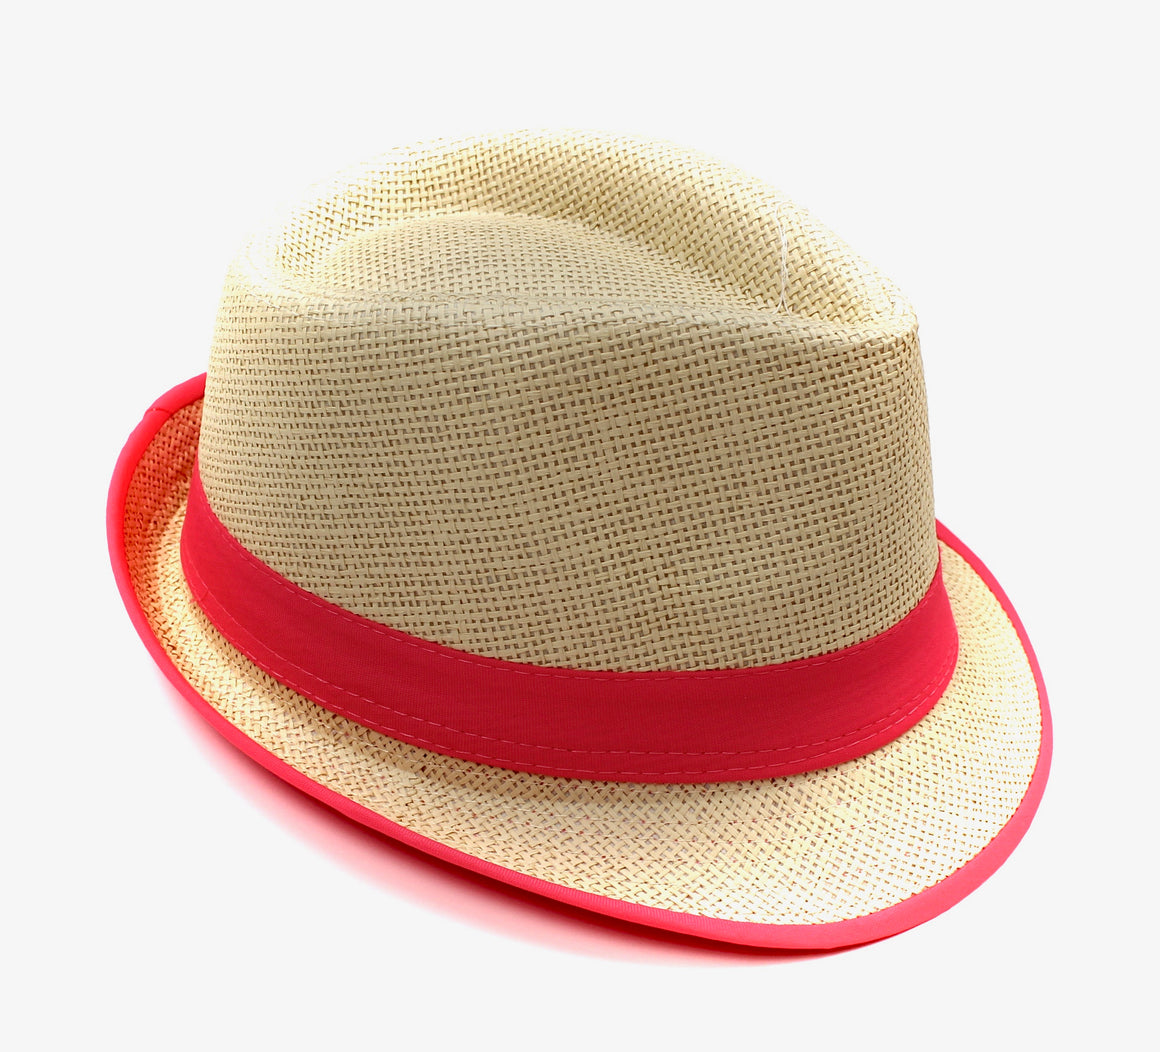 Straw Fedora Hat in Neon Pink - Lounge Beauties